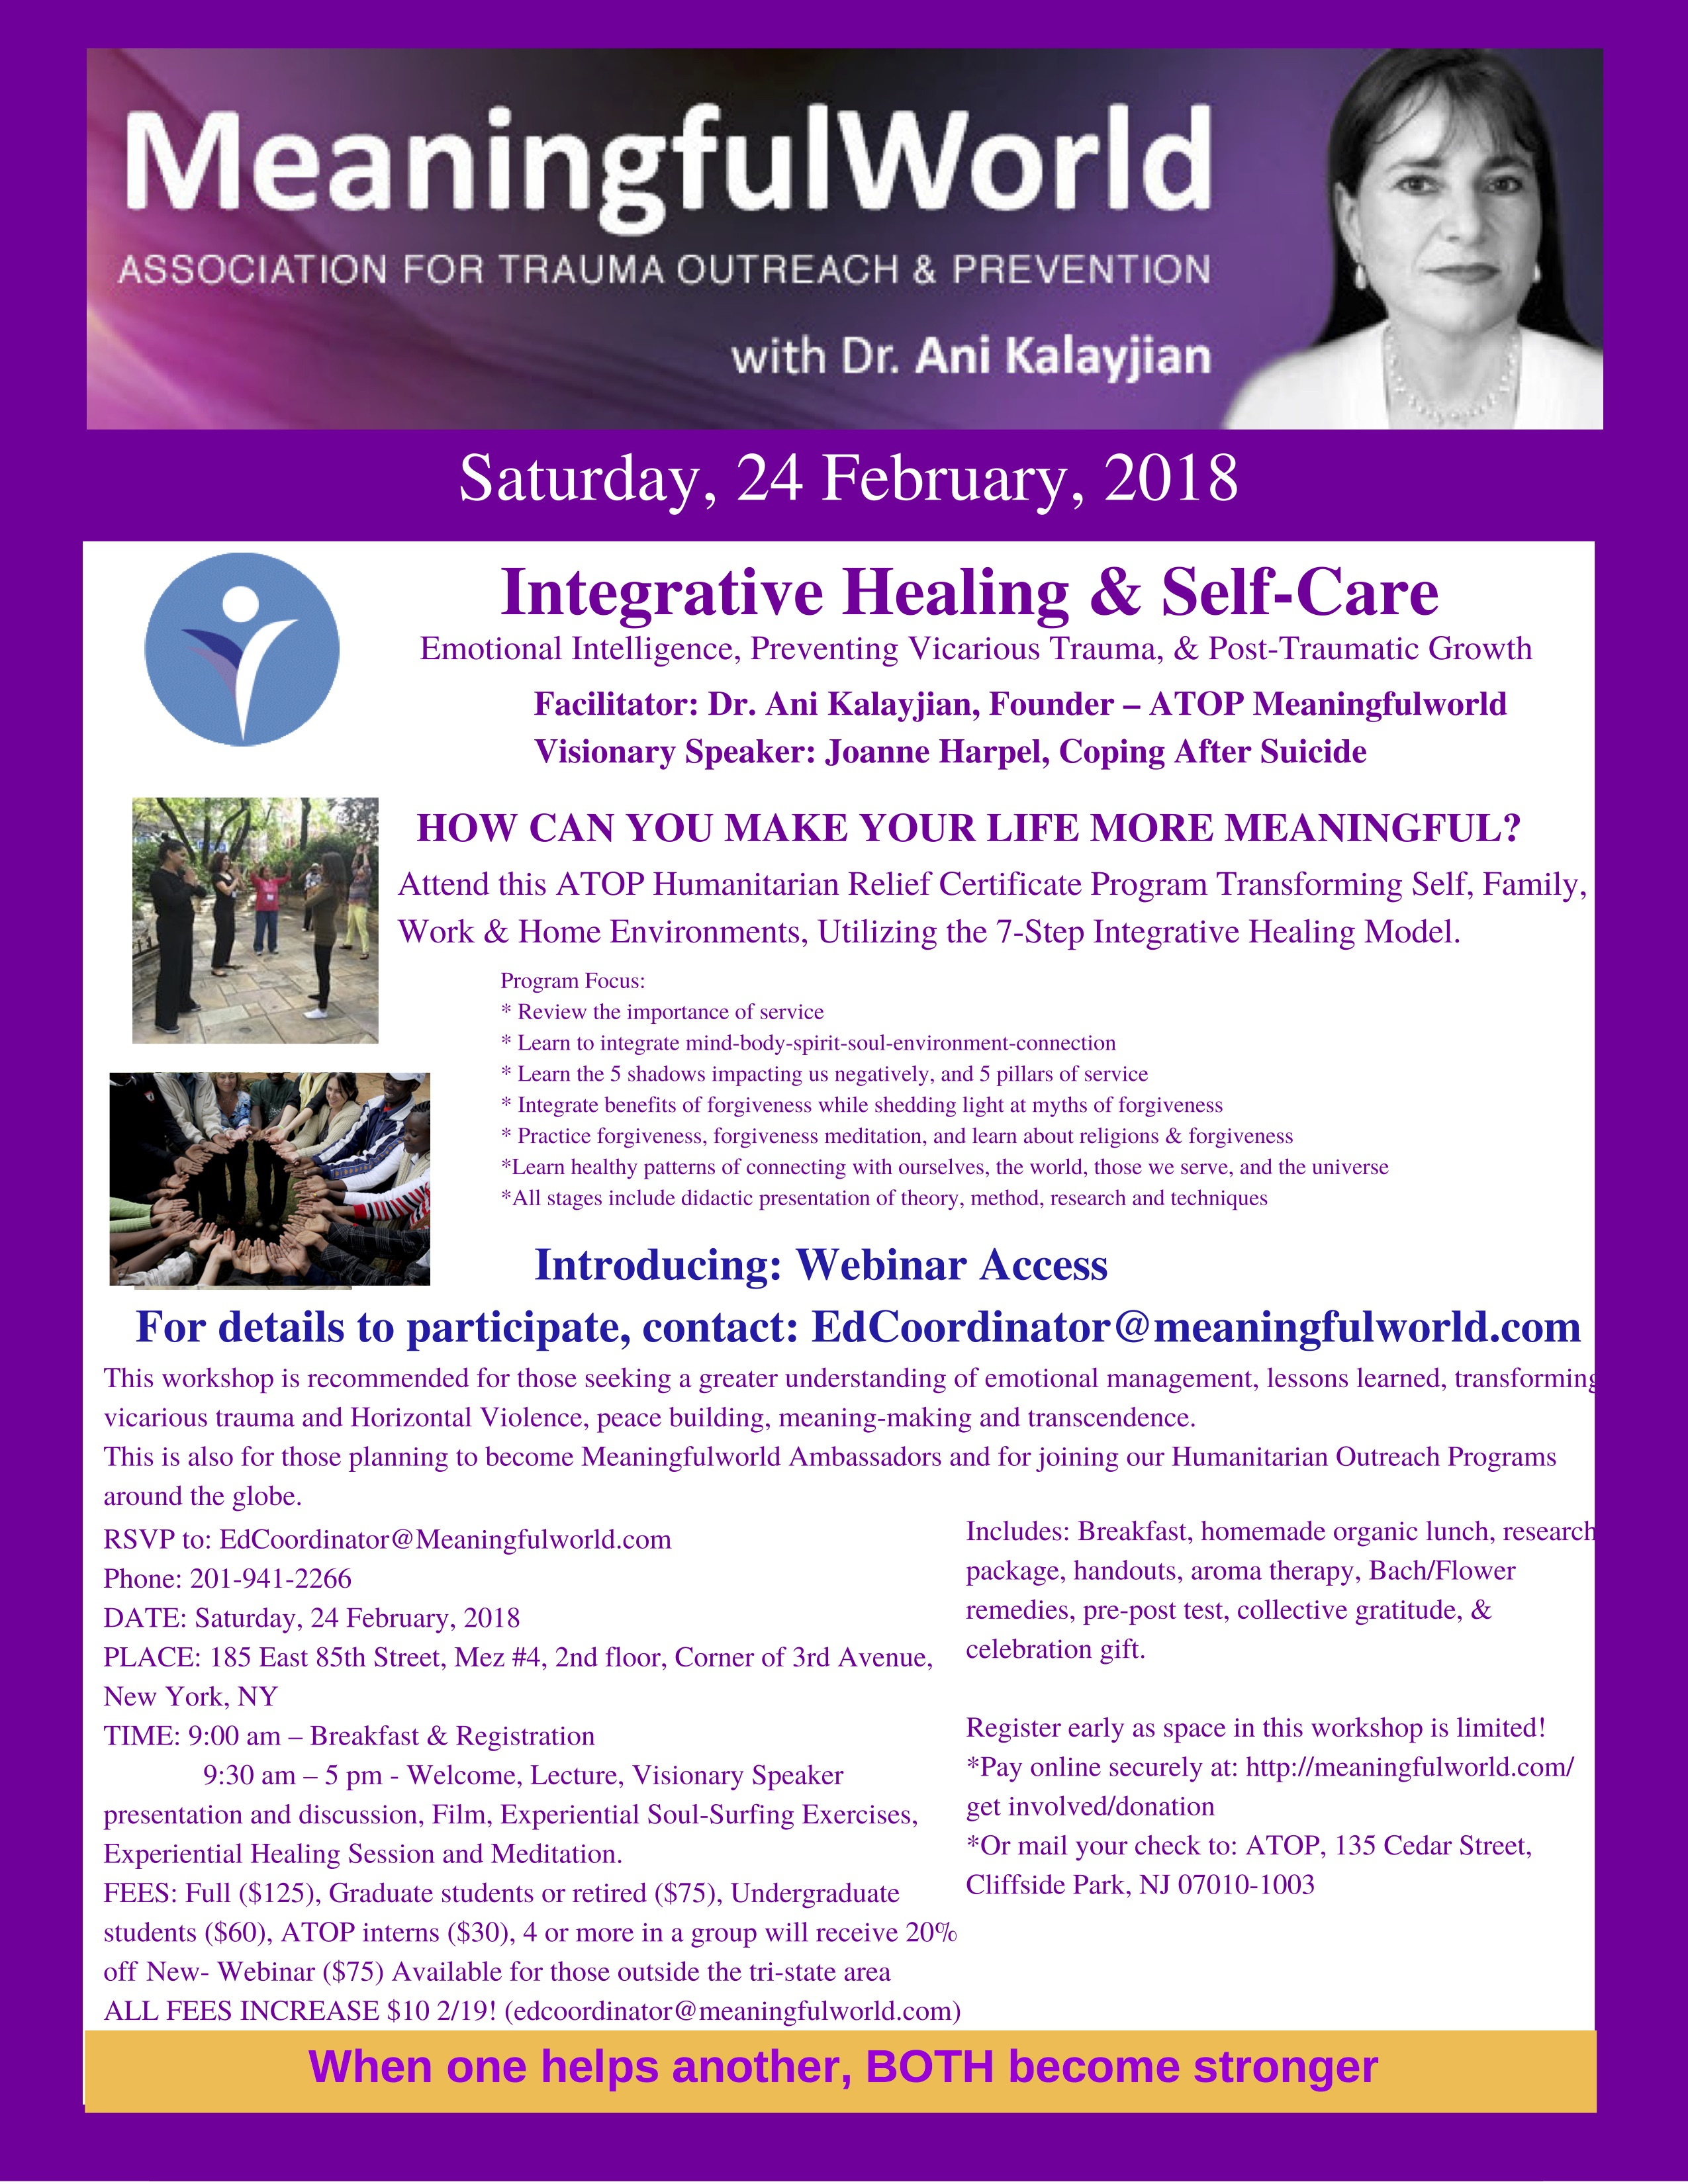 Meaningfulworld Integrative Healing & Self-Care 24 February 2018 all day workshop